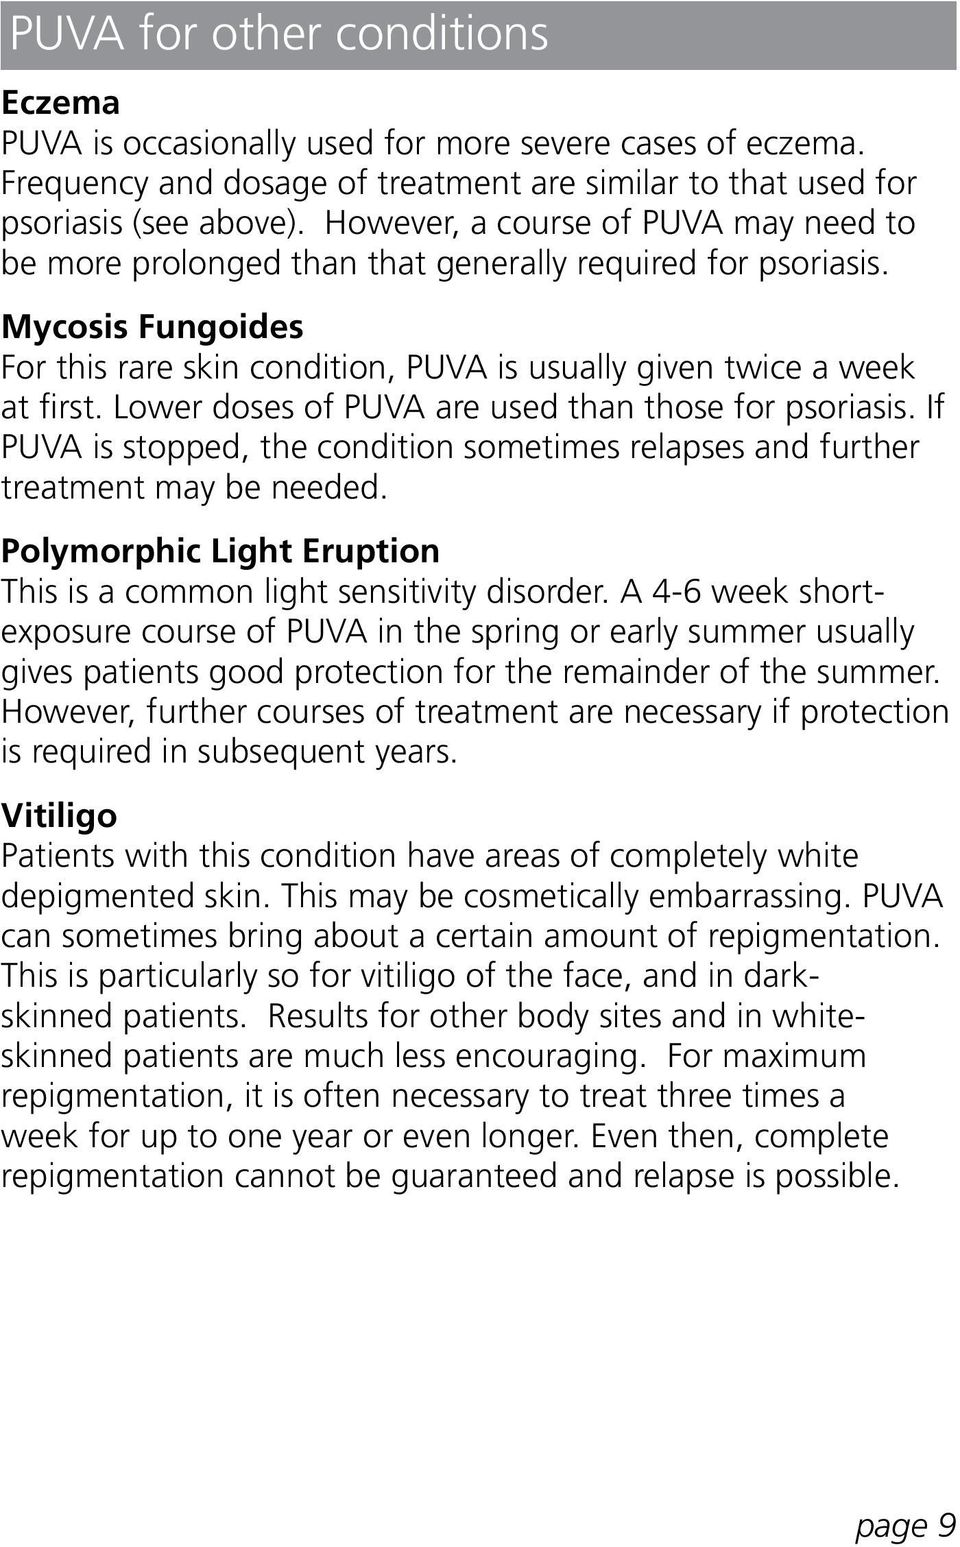 Lower doses of PUVA are used than those for psoriasis. If PUVA is stopped, the condition sometimes relapses and further treatment may be needed.